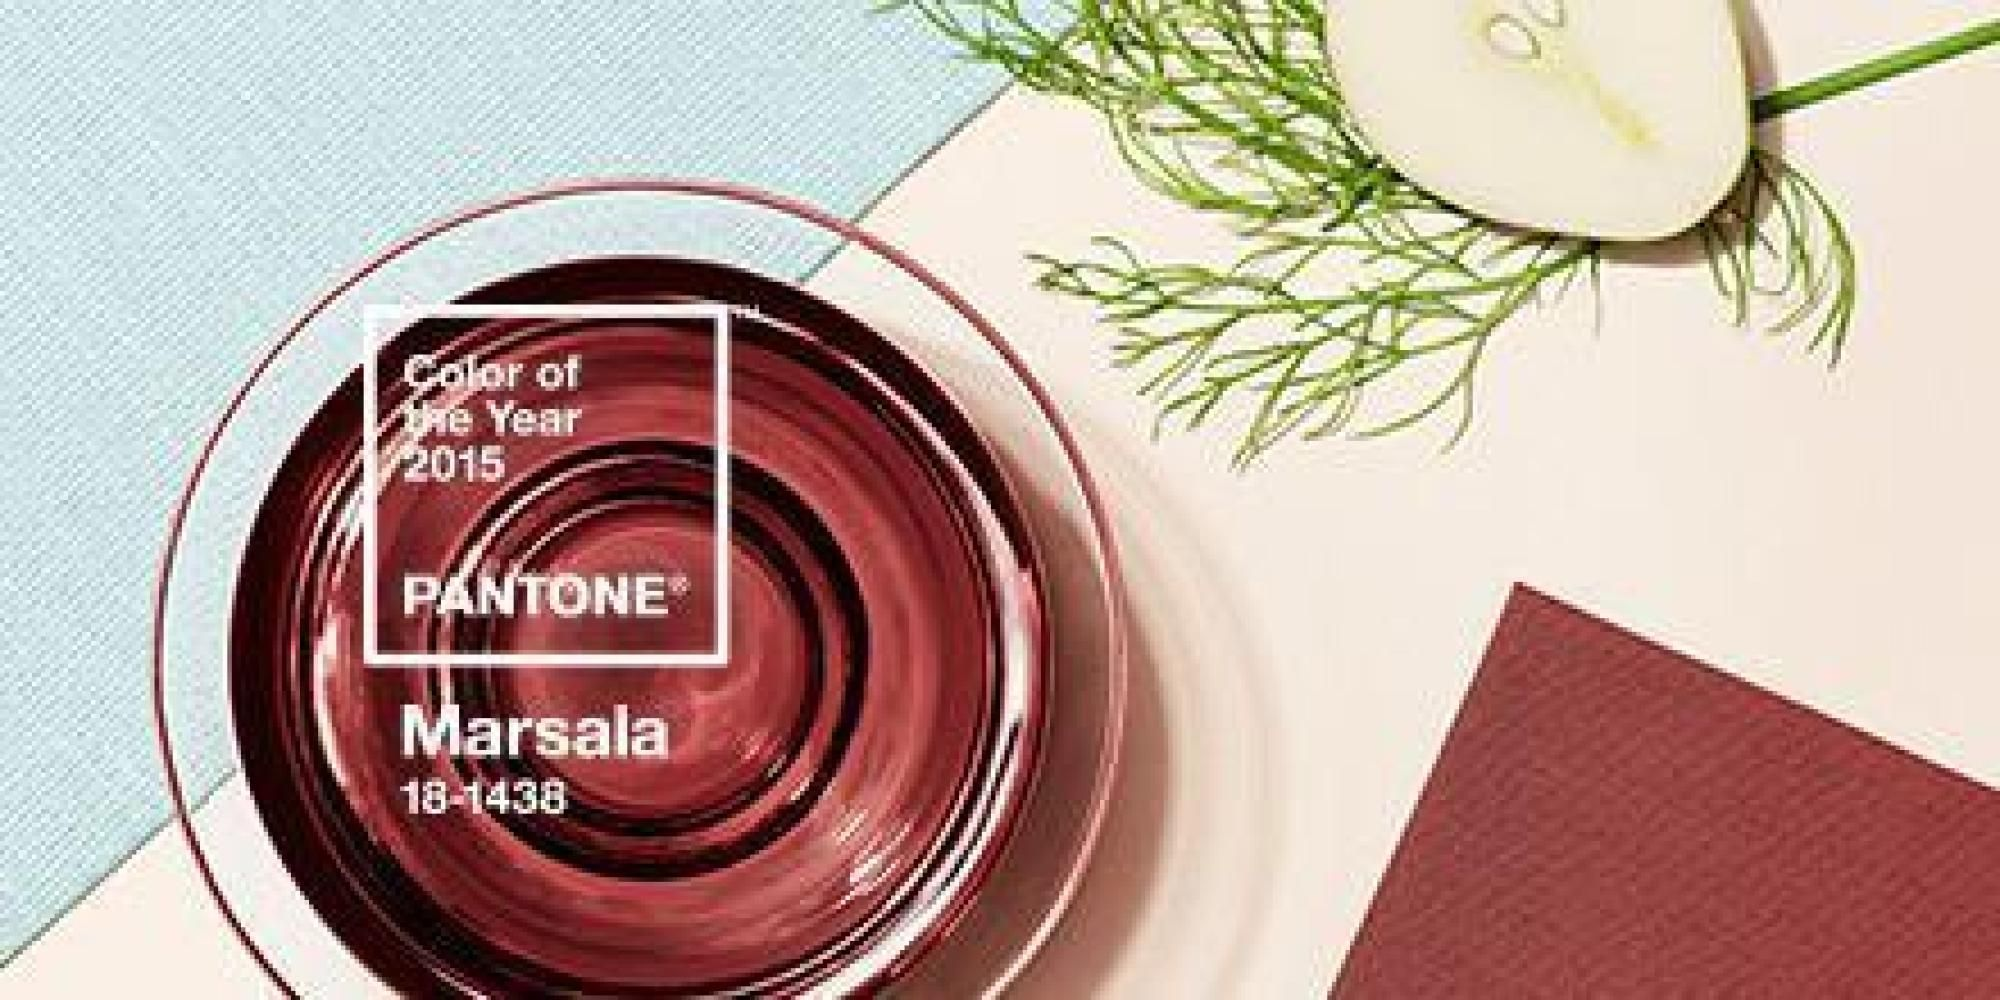 New York Ap Let S Hear It For Marsala The Wine Influenced Red Kissed Color Of 2015 As Chosen By Pantone Hardy Robu With Images Pantone Color Of The Year Marsala